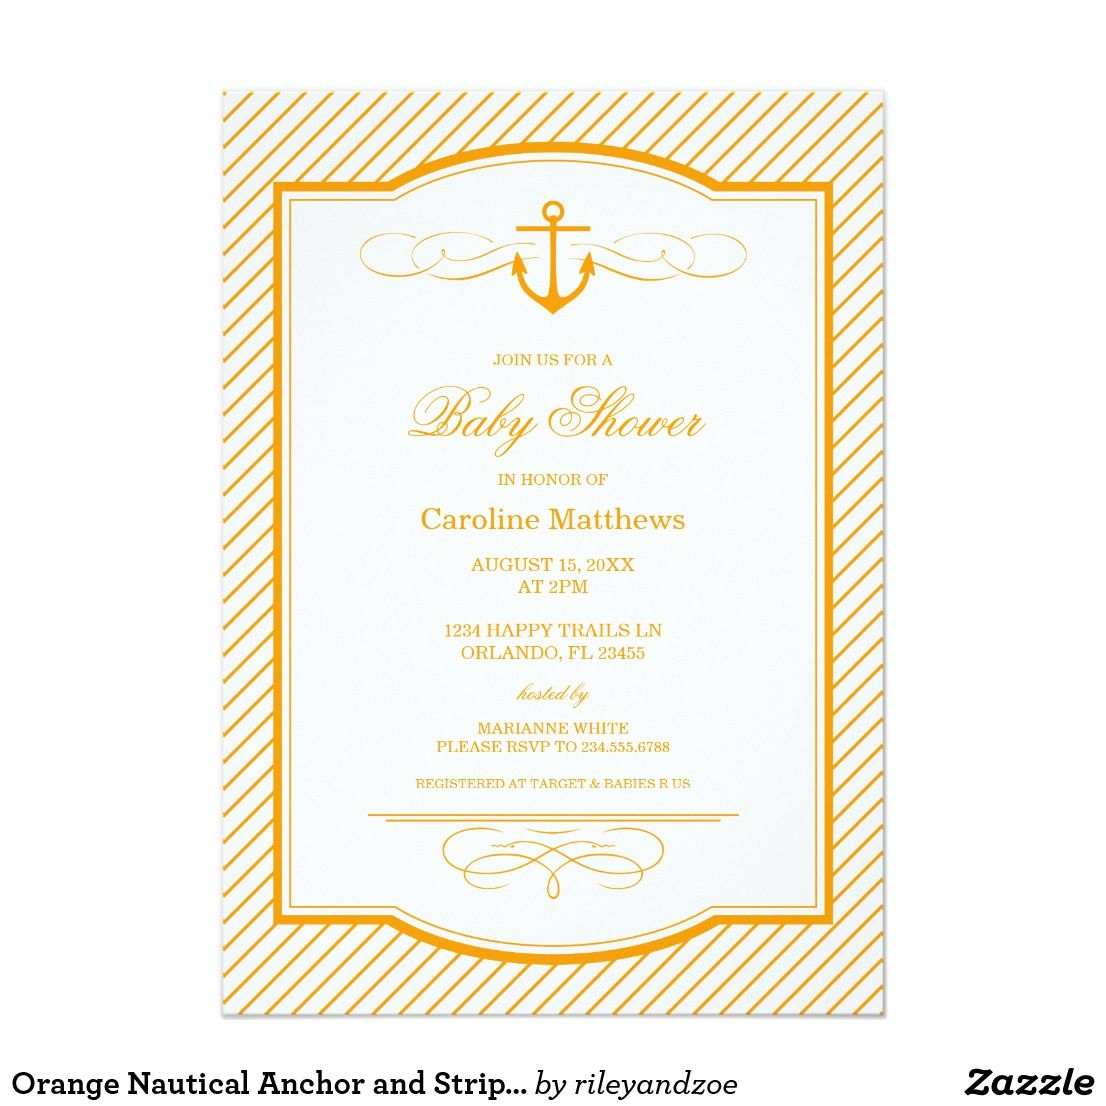 Orange Nautical Anchor And Stripes Baby Shower Card Preppy Modern